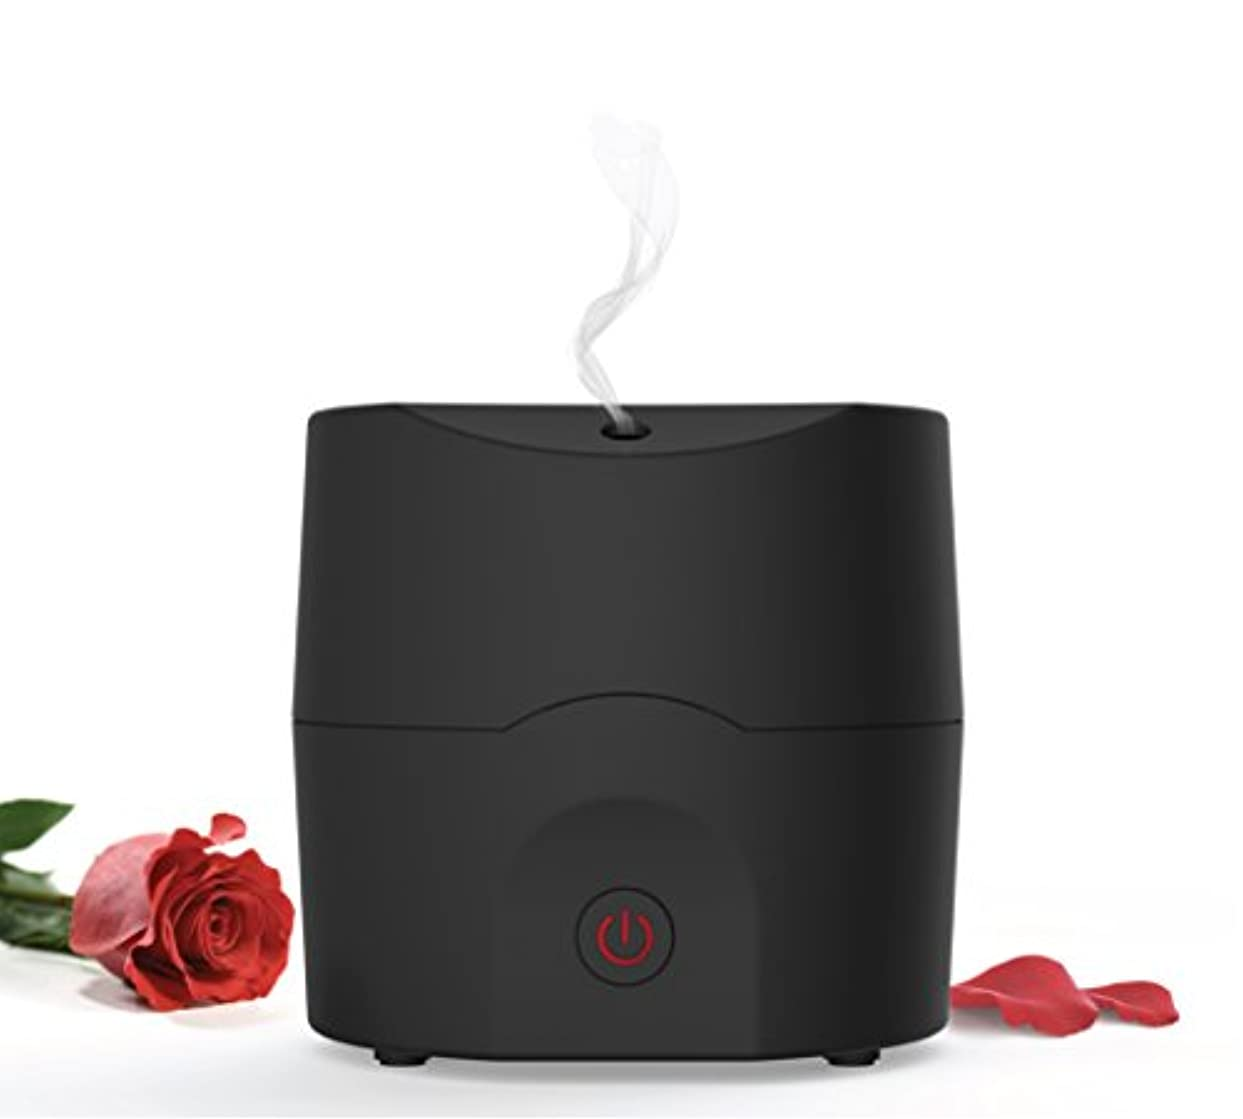 遠え式取り替えるAlpha Aroma Best essential Oil Diffuser, Scent and fragrance ultrasonic Aromatherapy - Now with Belgian Design...